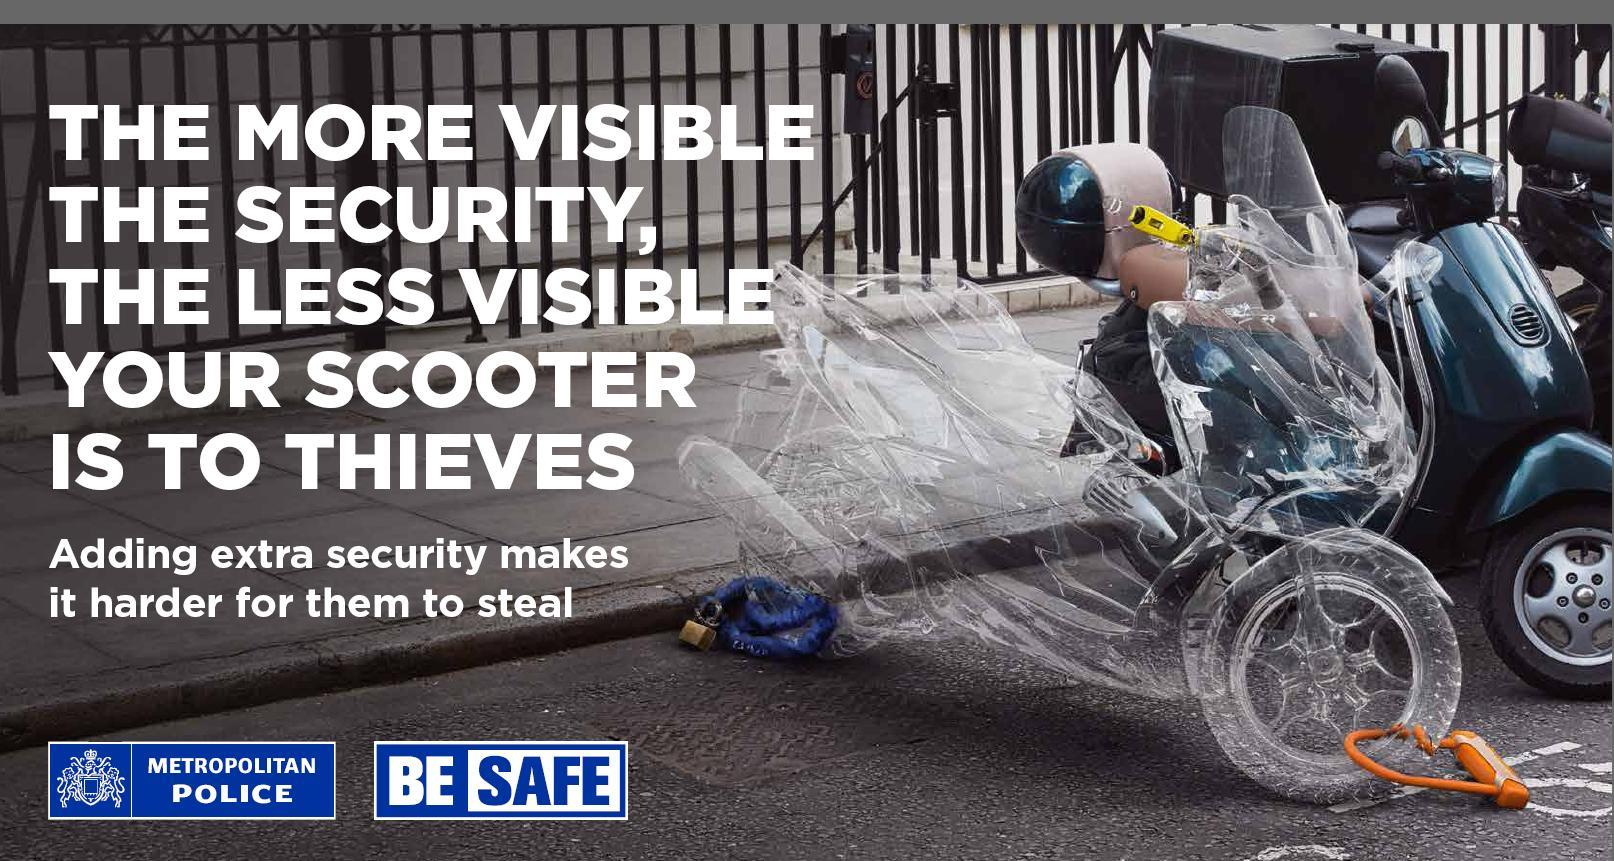 Met Police 'Be Safe' campaign